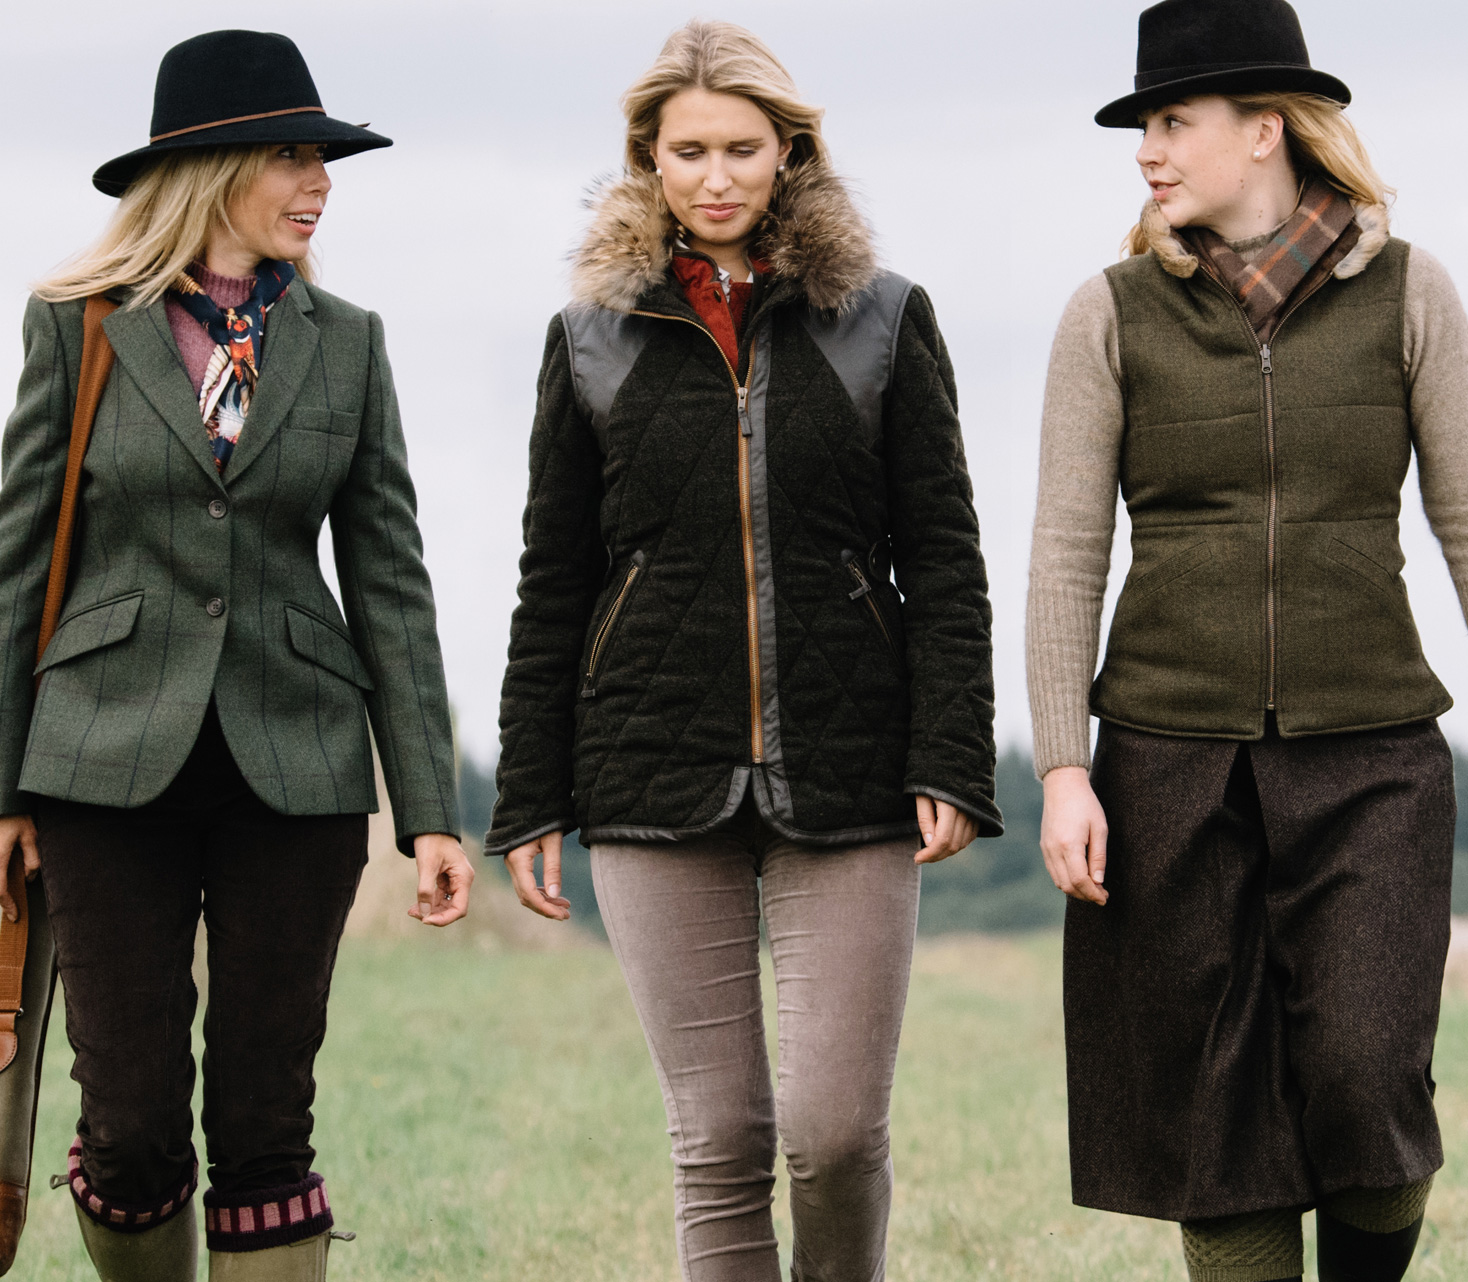 Ladies Countryside Outfits